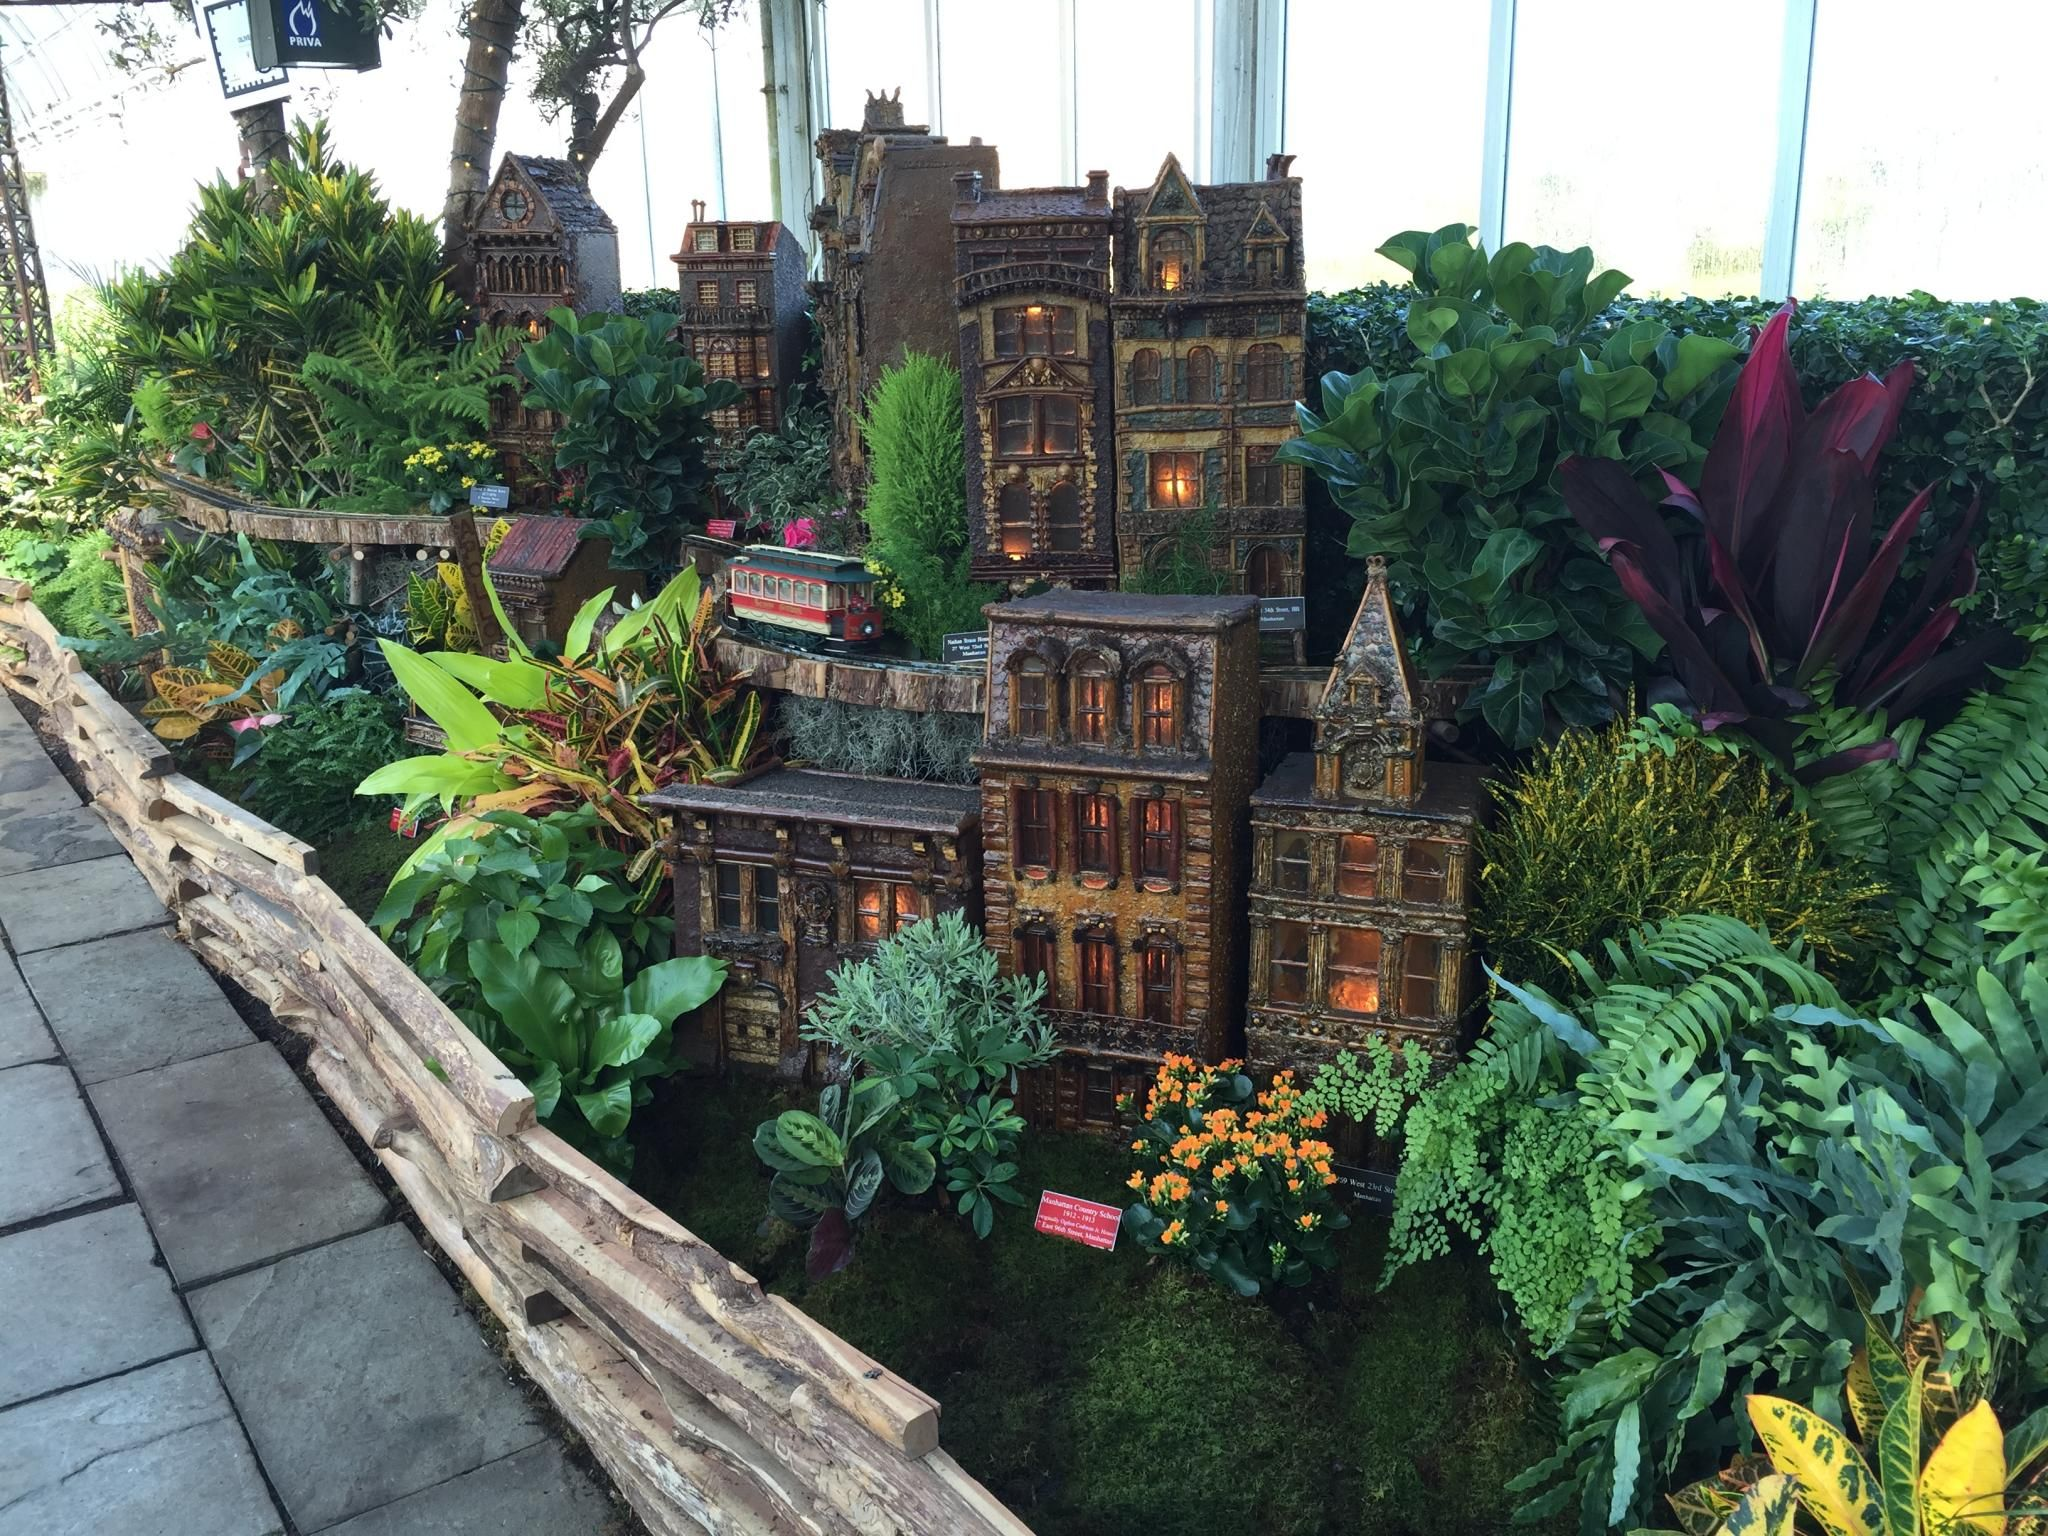 The Holiday Train Show At The New York Botanical Garden  Click Through To  See